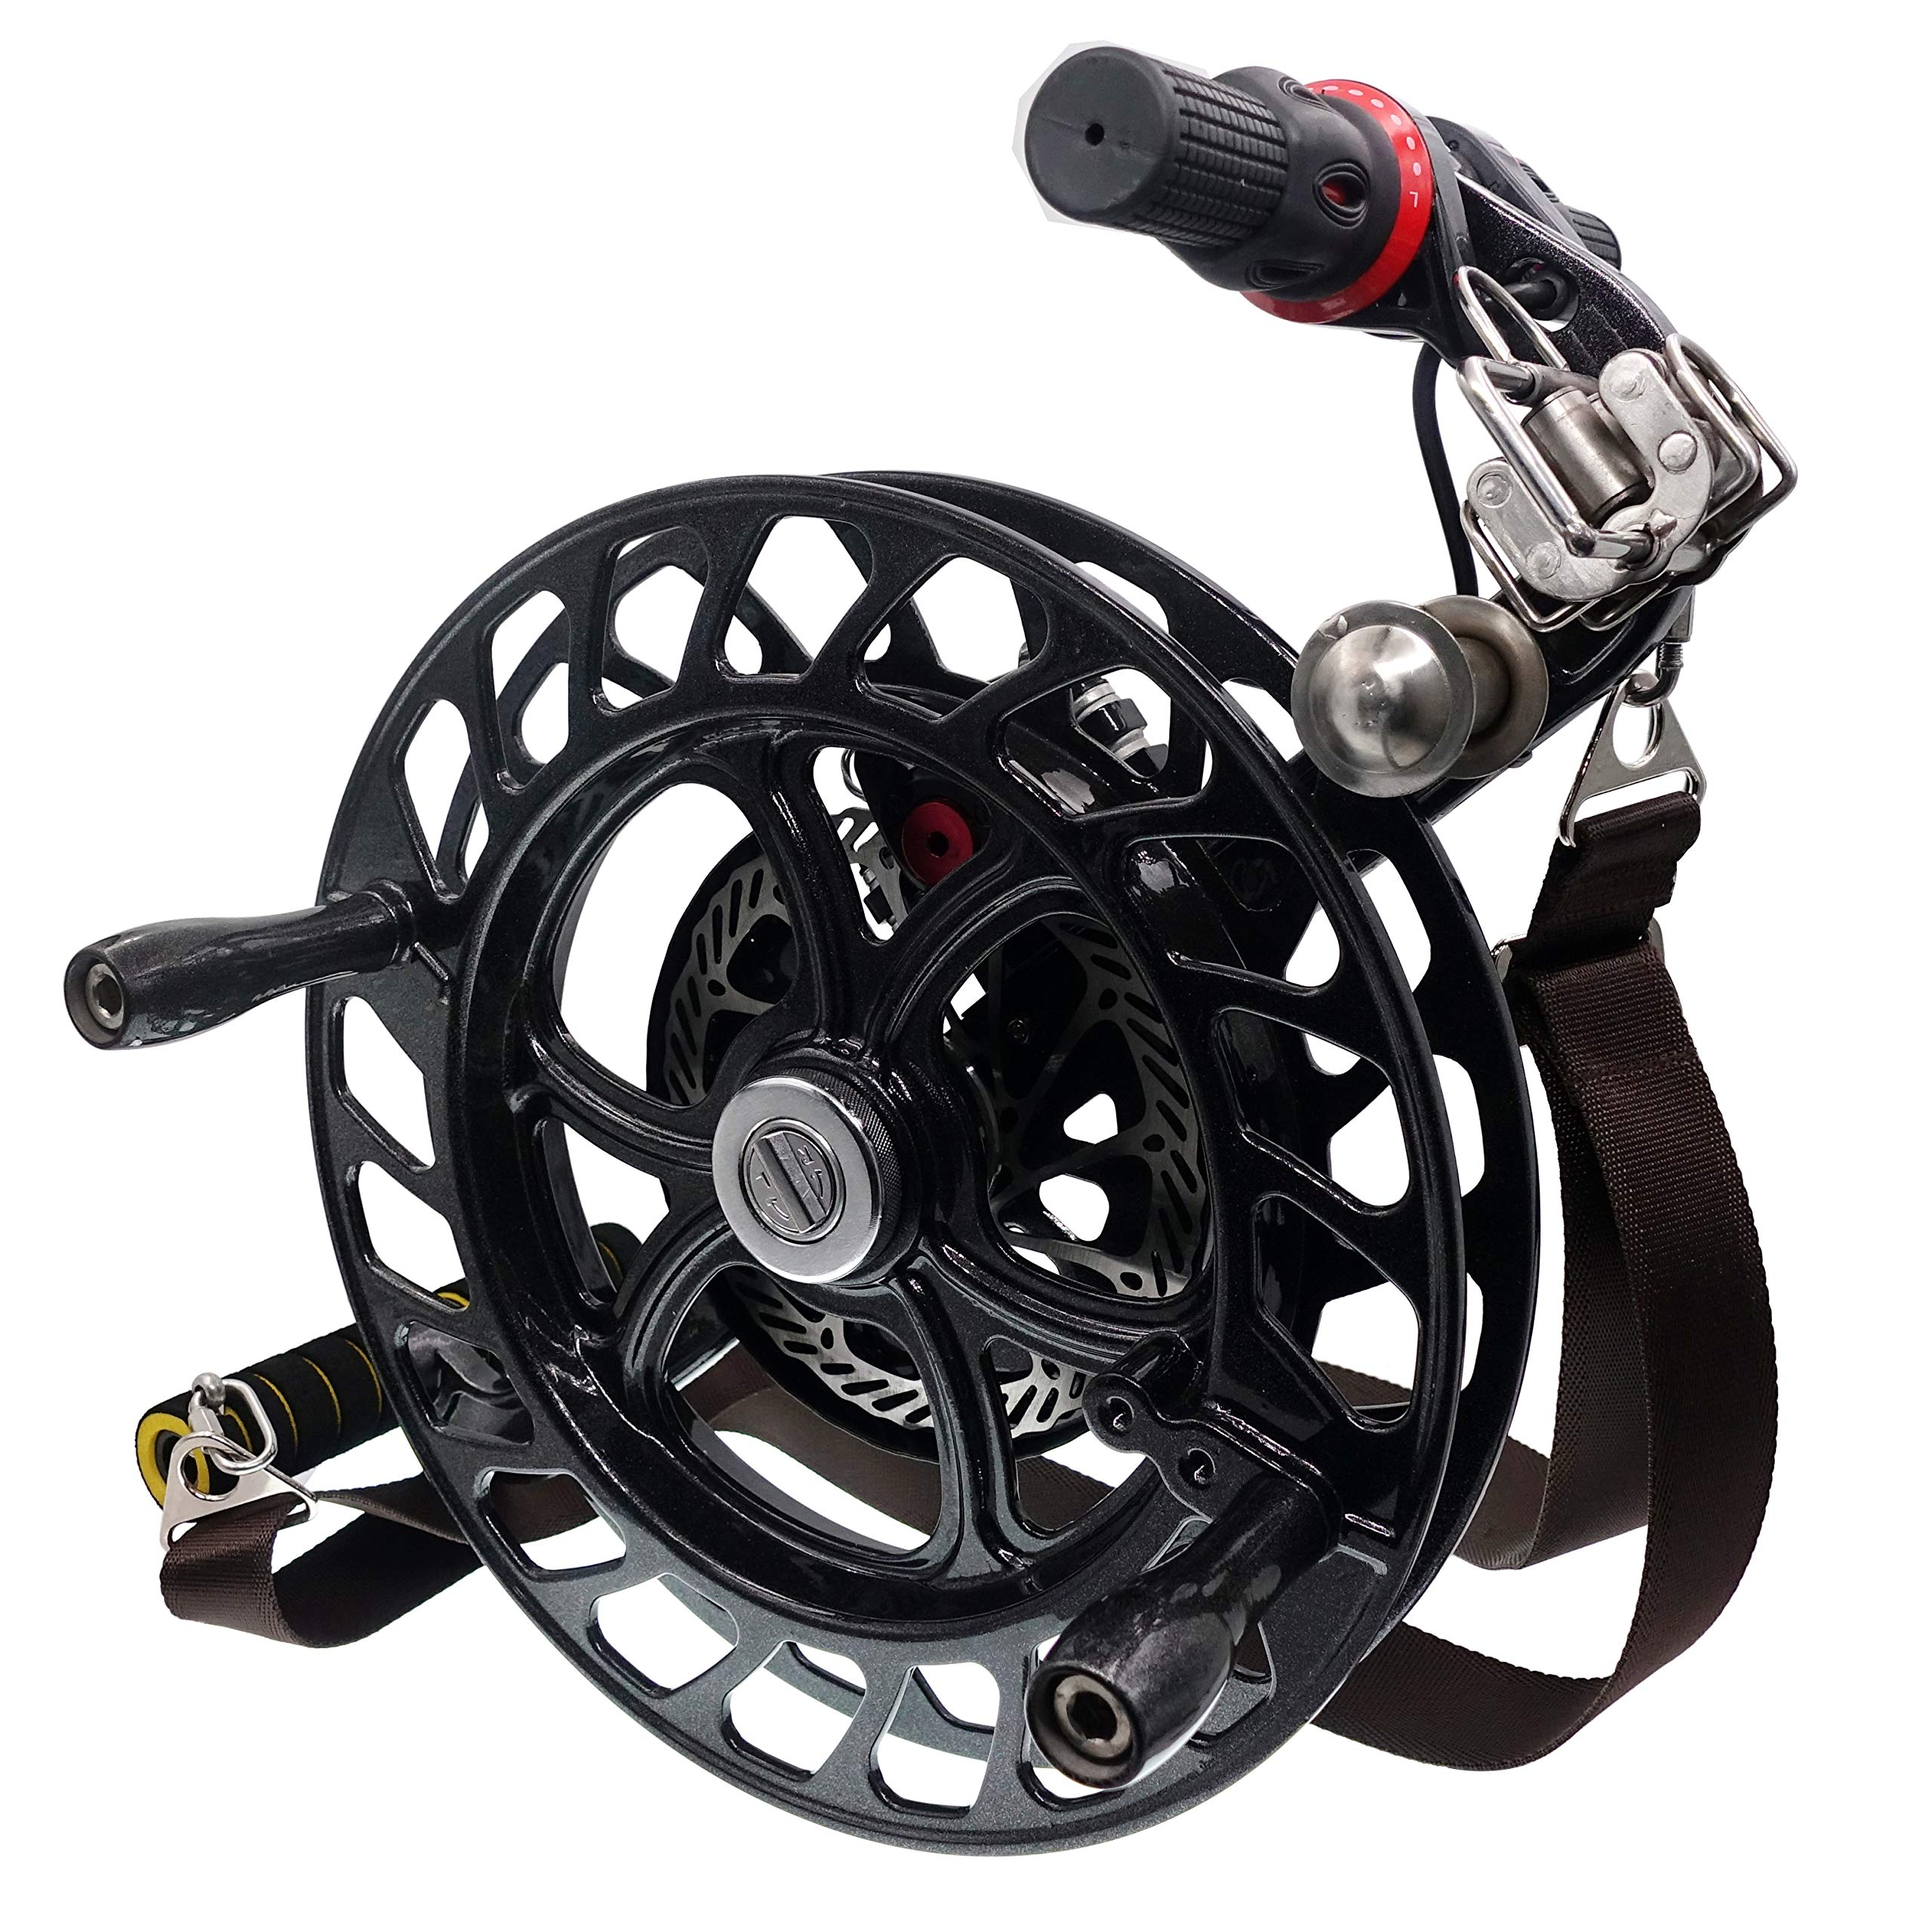 emma kites 12.6'' Black Kite Winder Reel with Disc Brake Shoulder Strap 7 Rollers for Kite Line in and Out by emma kites (Image #1)